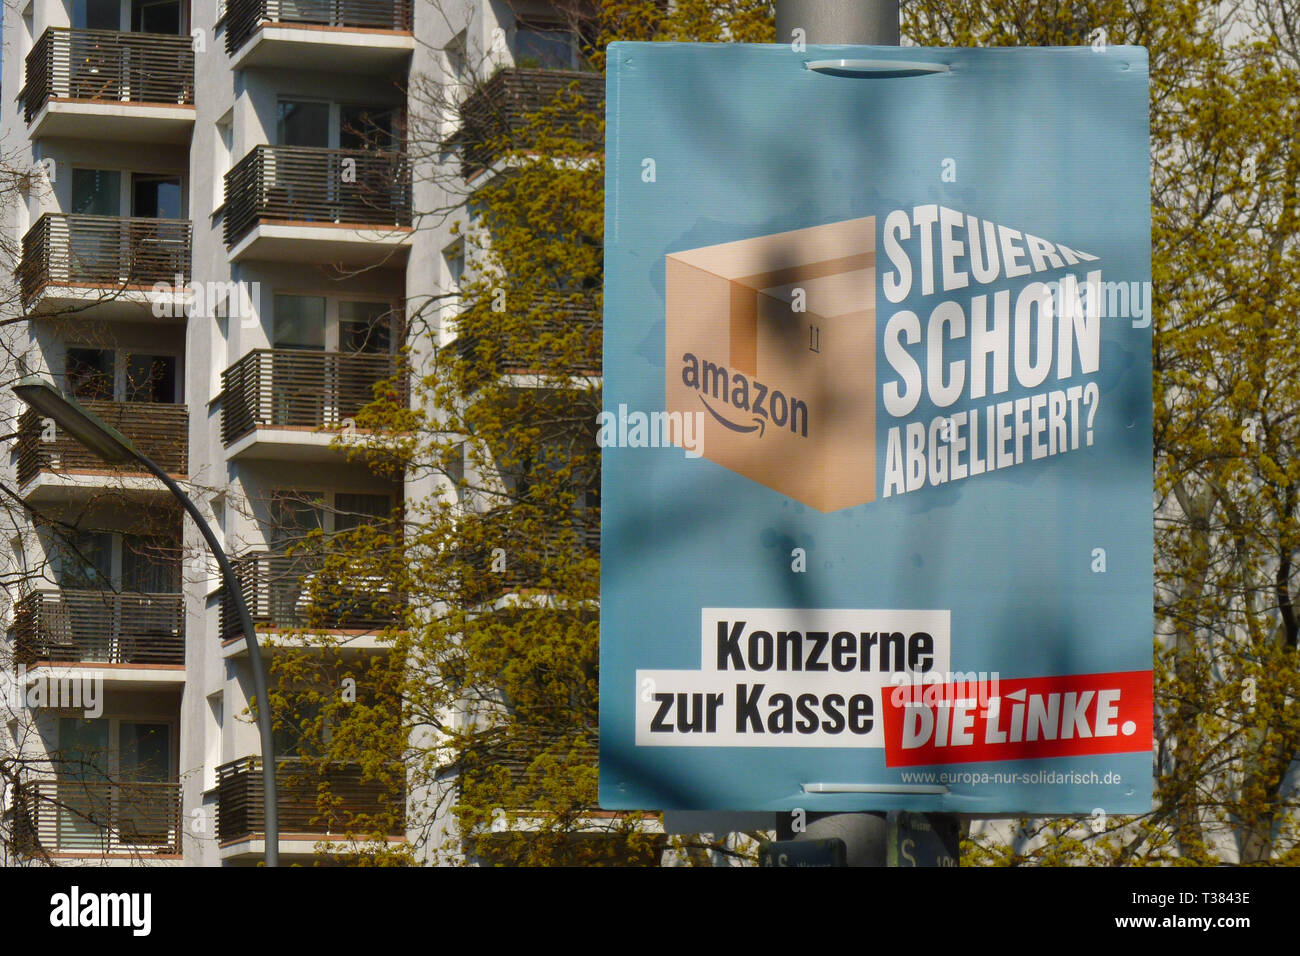 Berlin,  Germany. 7th Apr, 2019. An election poster with the slogan ''Konzerne zur Kasse'' of The Left (German: Die Linke), also commonly referred to as the Left Party (German: die Linkspartei) can be seen. From 23 to 26 May 2019, citizens of the European Union will be able to elect the European Parliament for the ninth time. In the Federal Republic of Germany, the election will take place on 26 May 2019. Credit: Jan Scheunert/ZUMA Wire/Alamy Live News - Stock Image